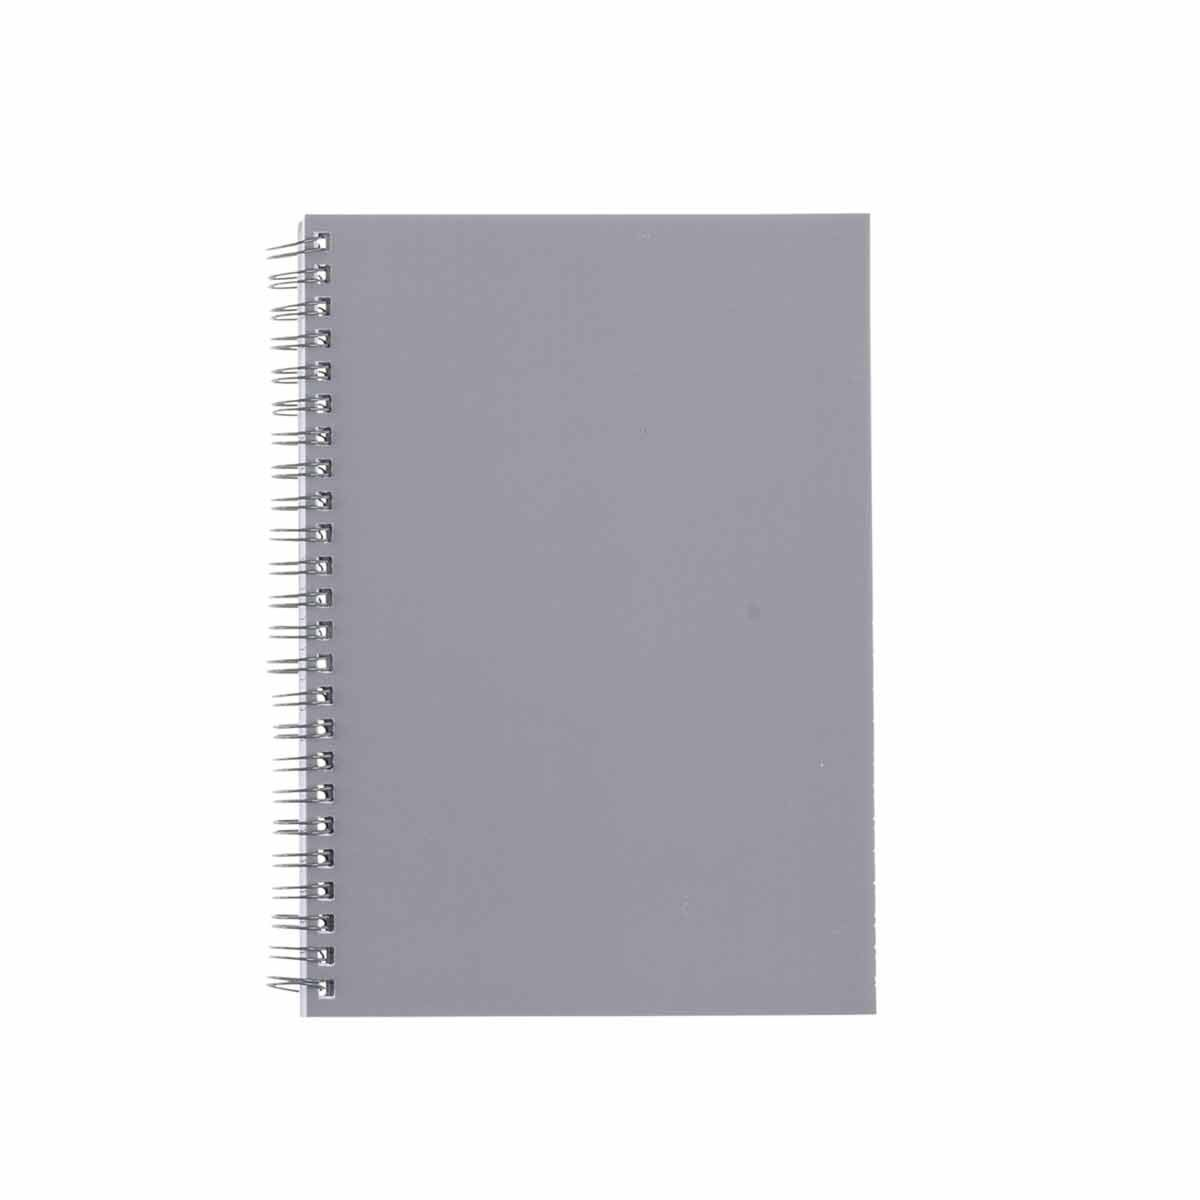 Ryman Pastel Essentials Notebook Ruled A5